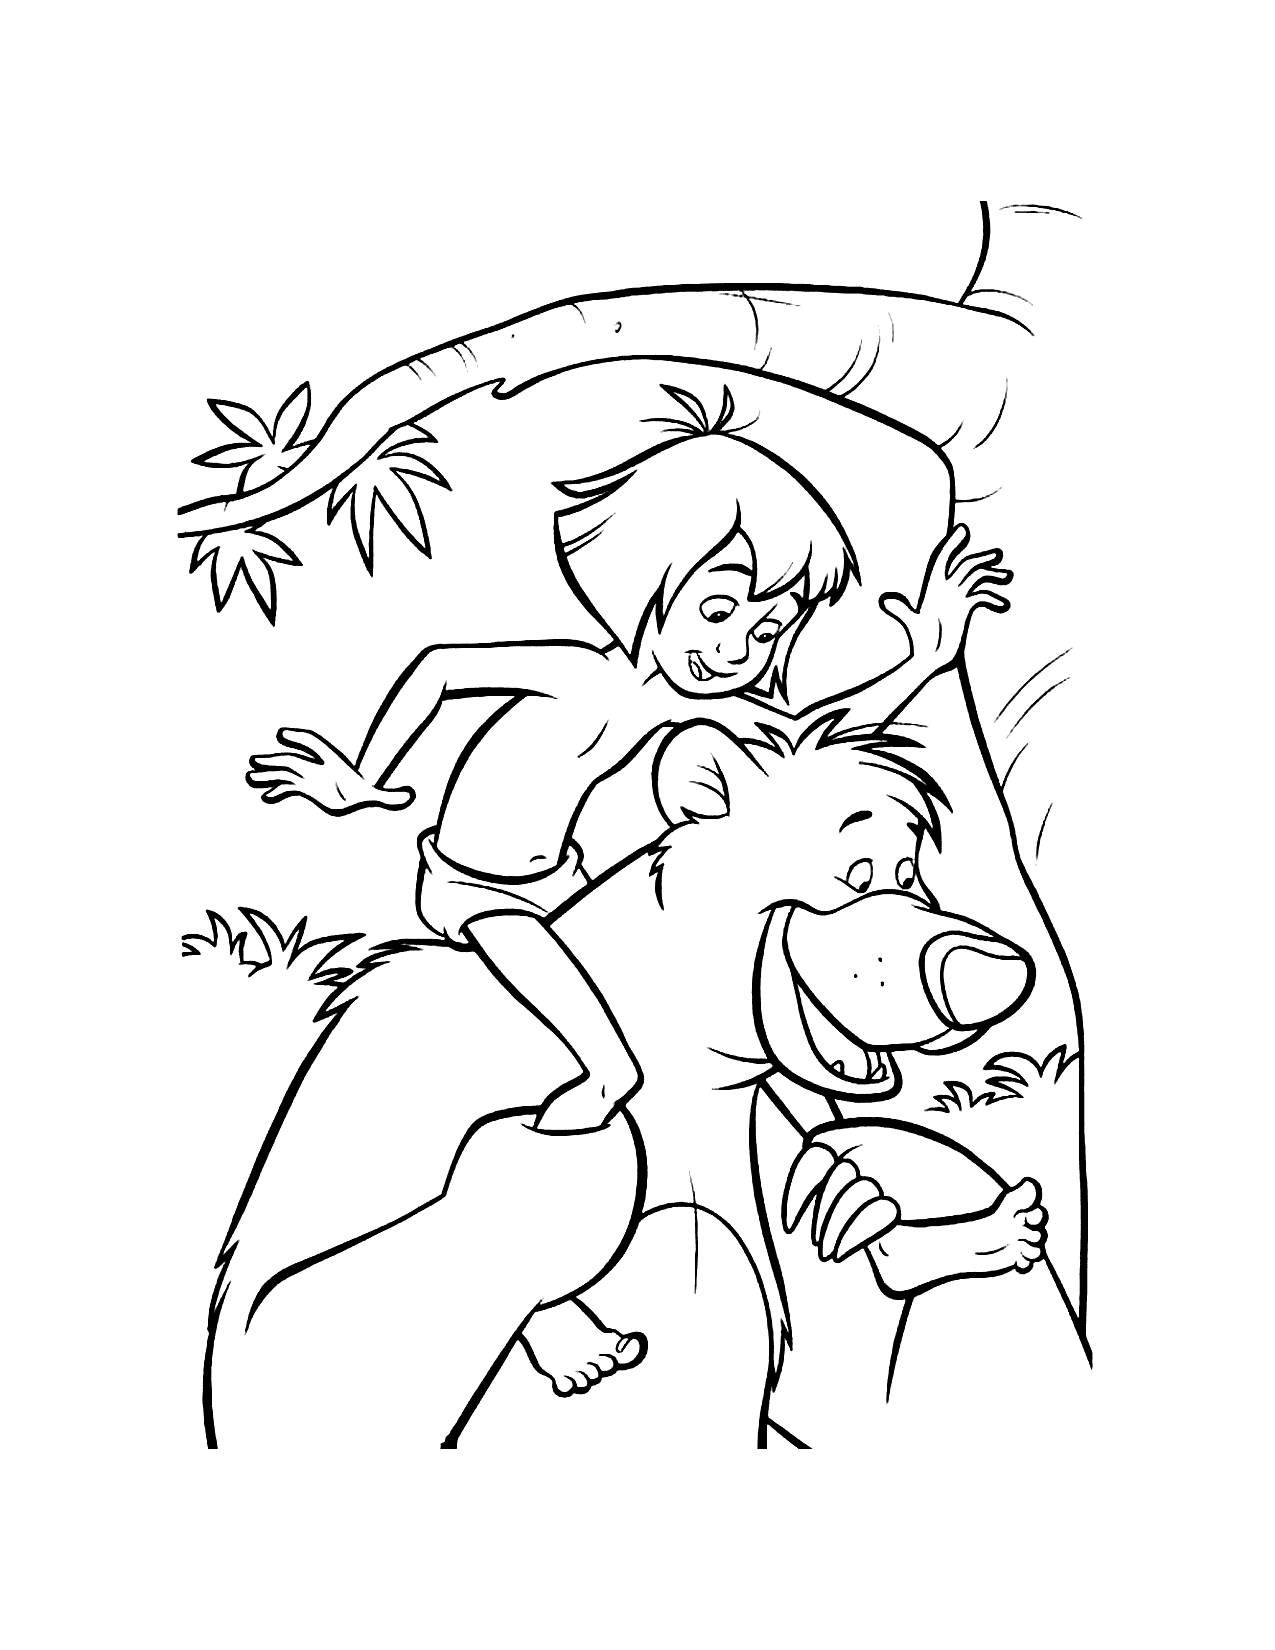 Fun Jungle Book Coloring Pages